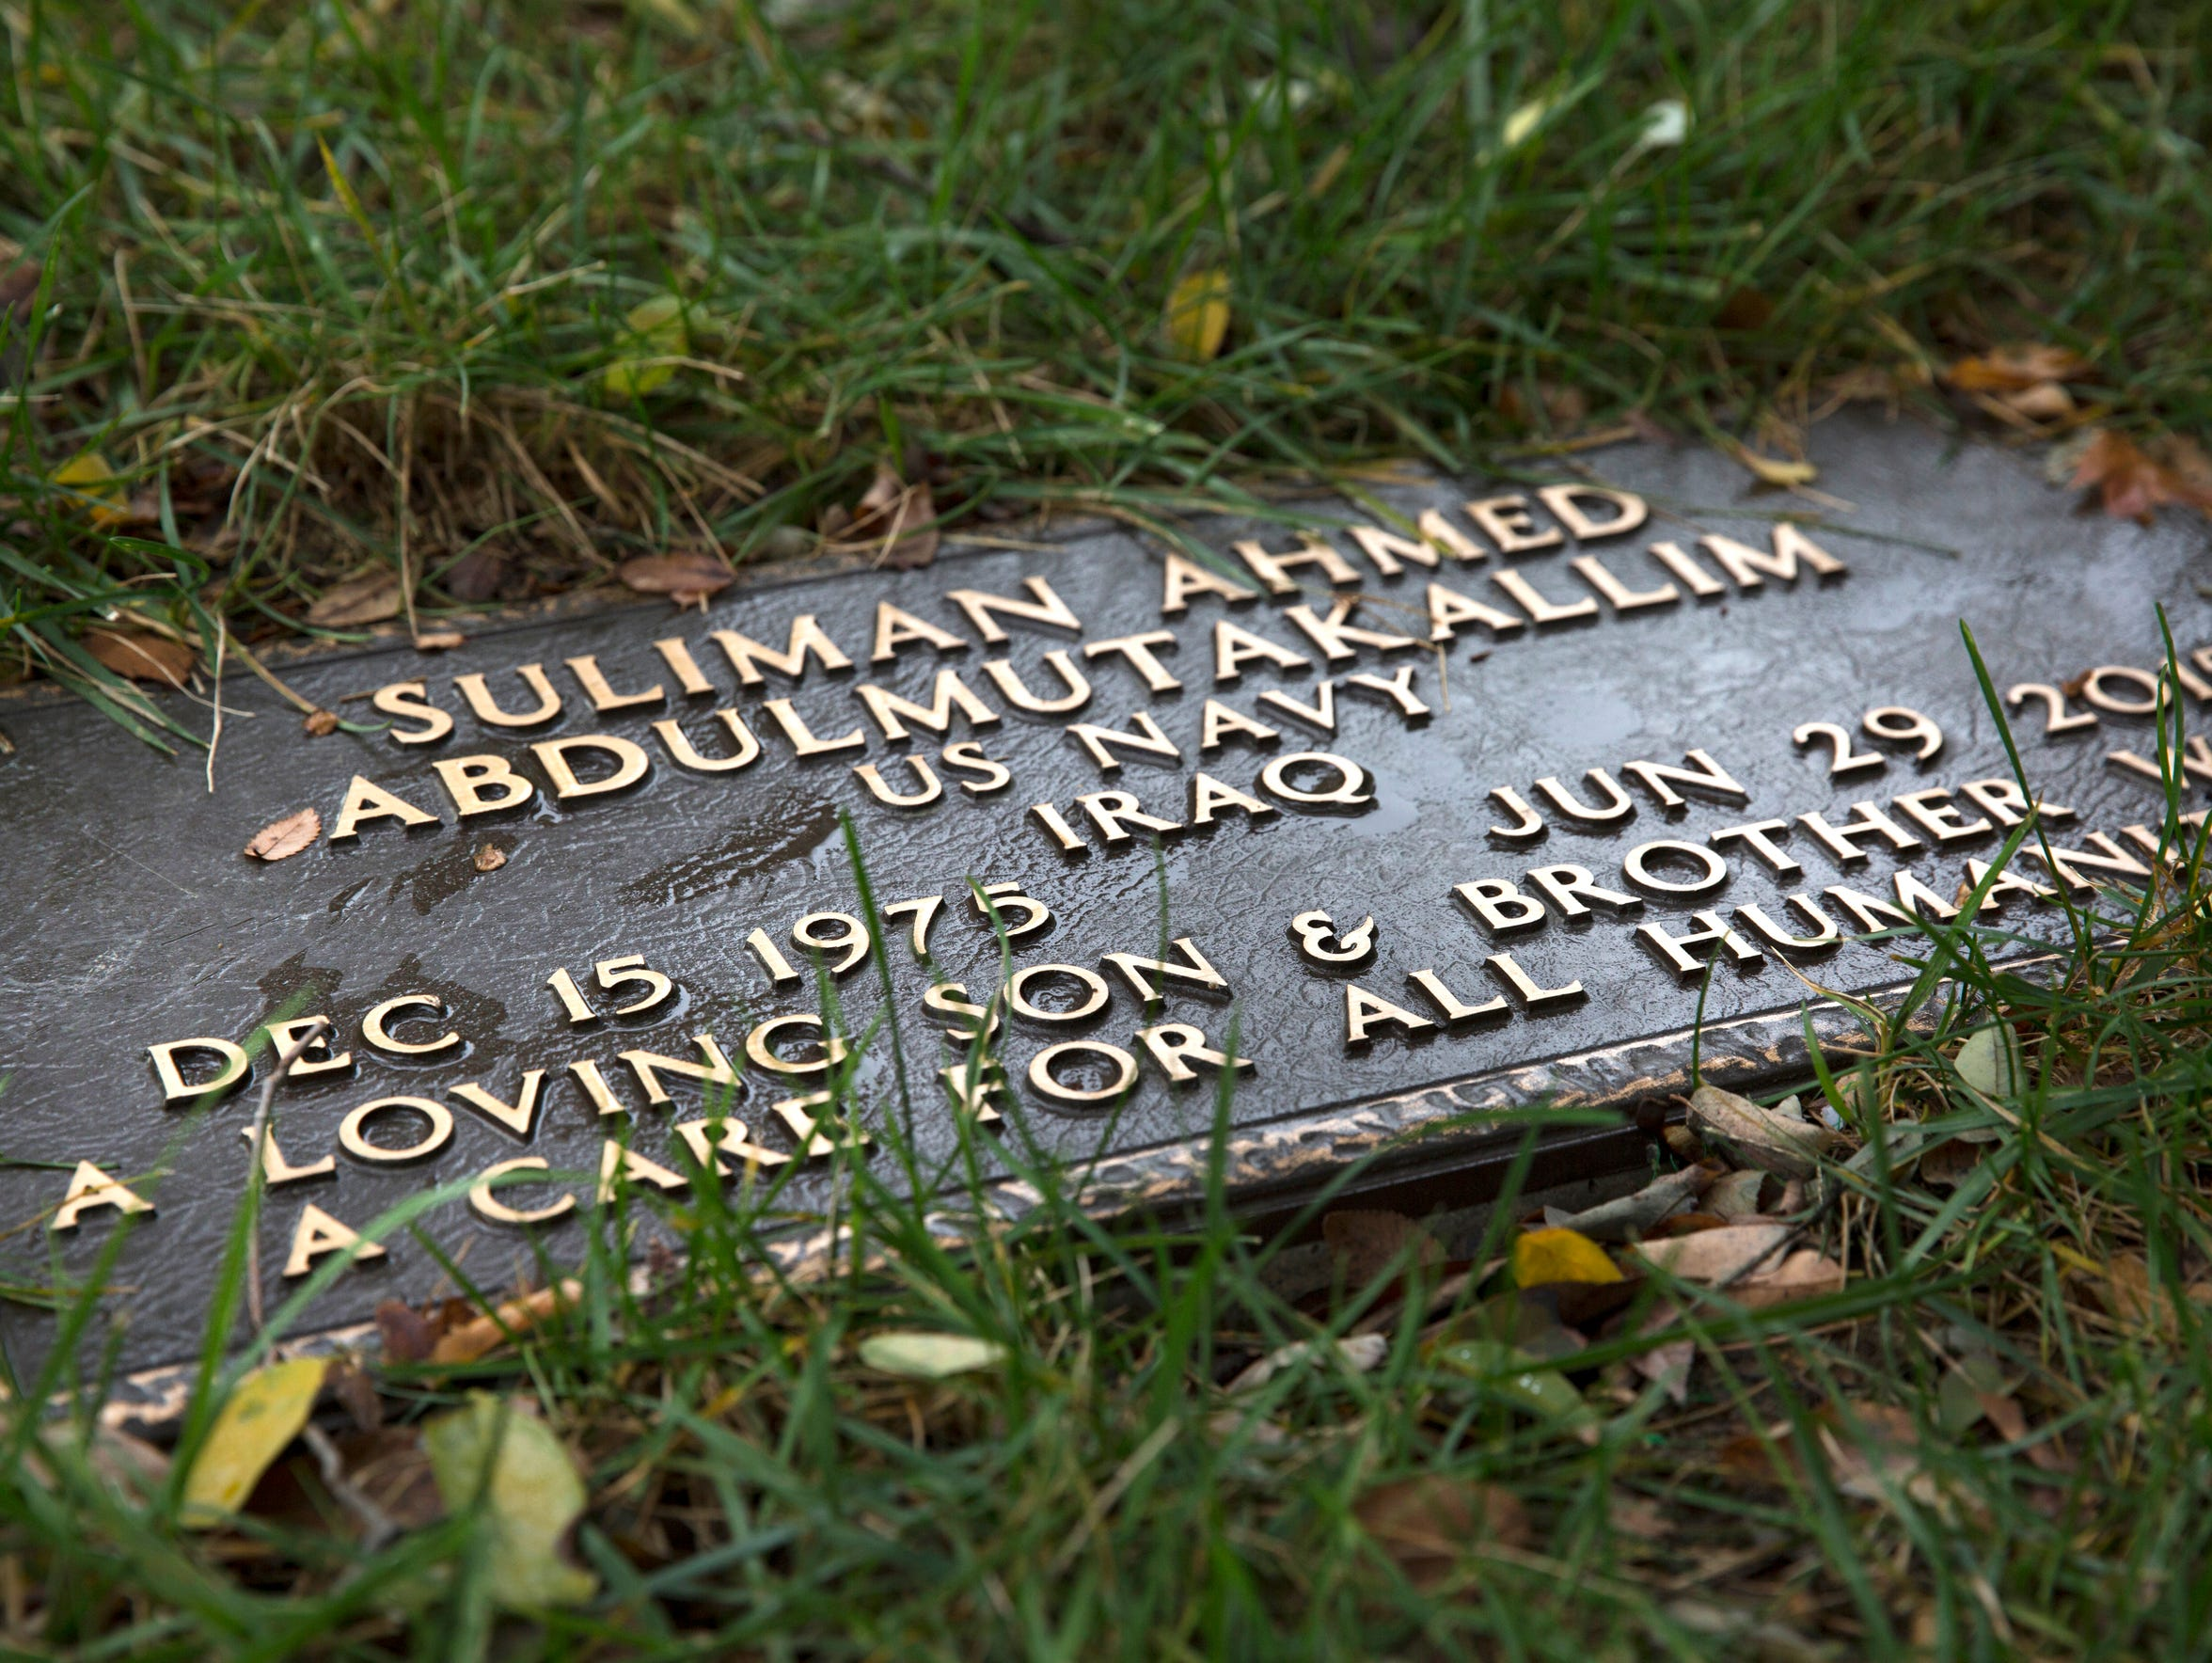 Suliman Ahmed Abdul-Mutakallim, 39, is buried in the military section of Spring Grove Cemetery.